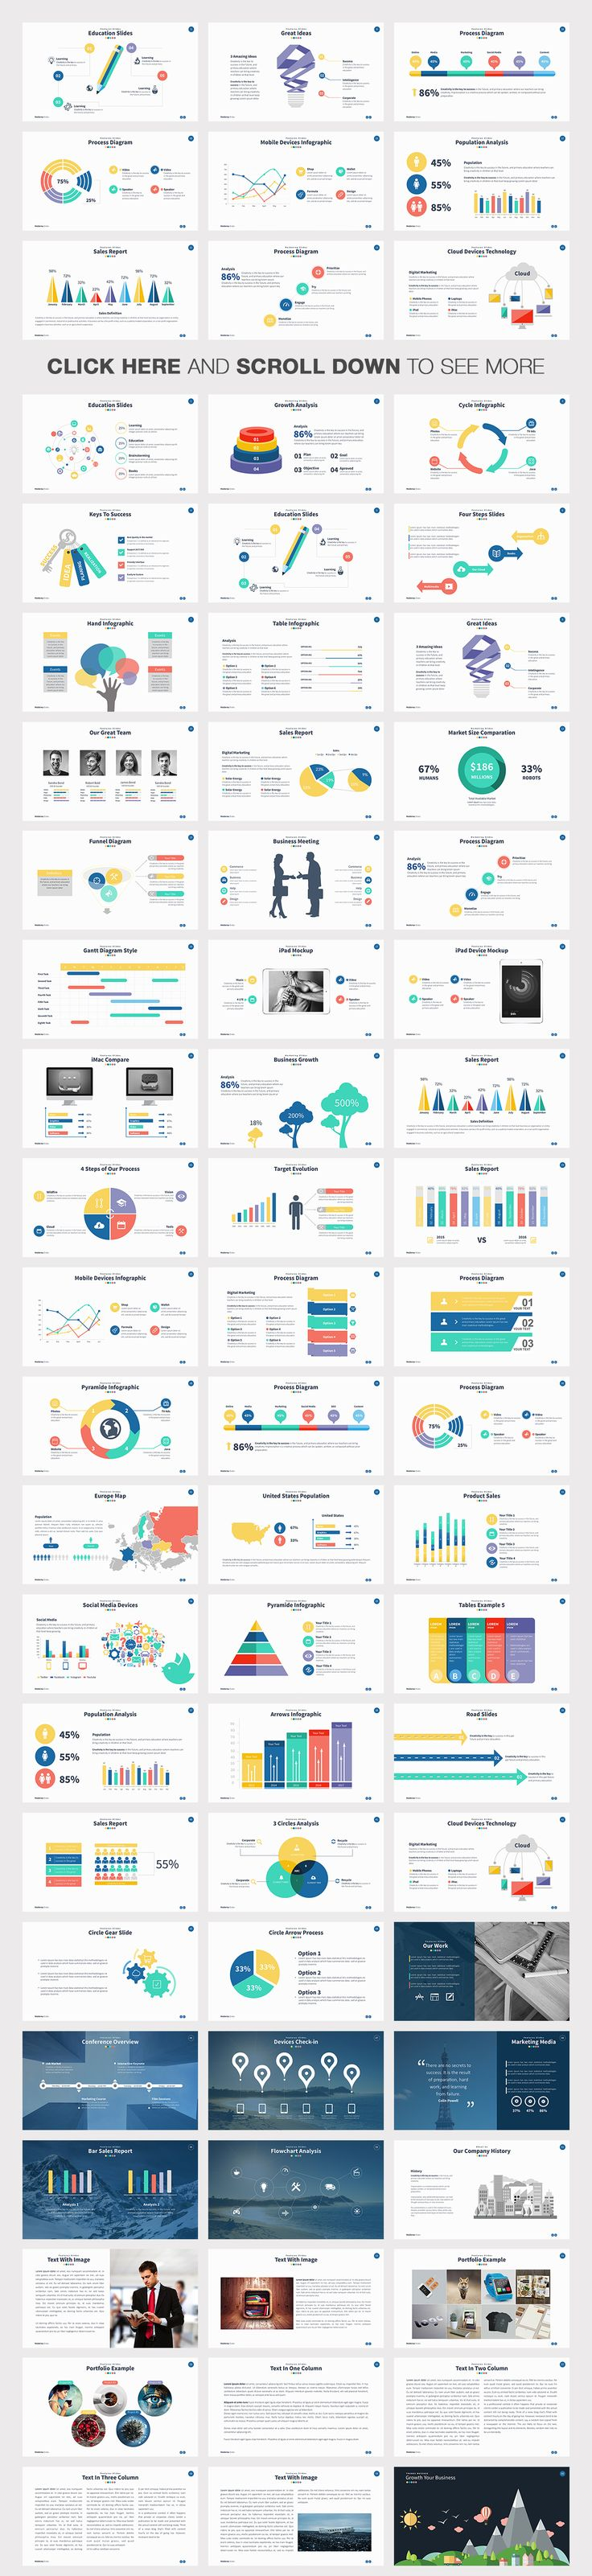 Moderna Powerpoint Template by Slidedizer on Creative Market